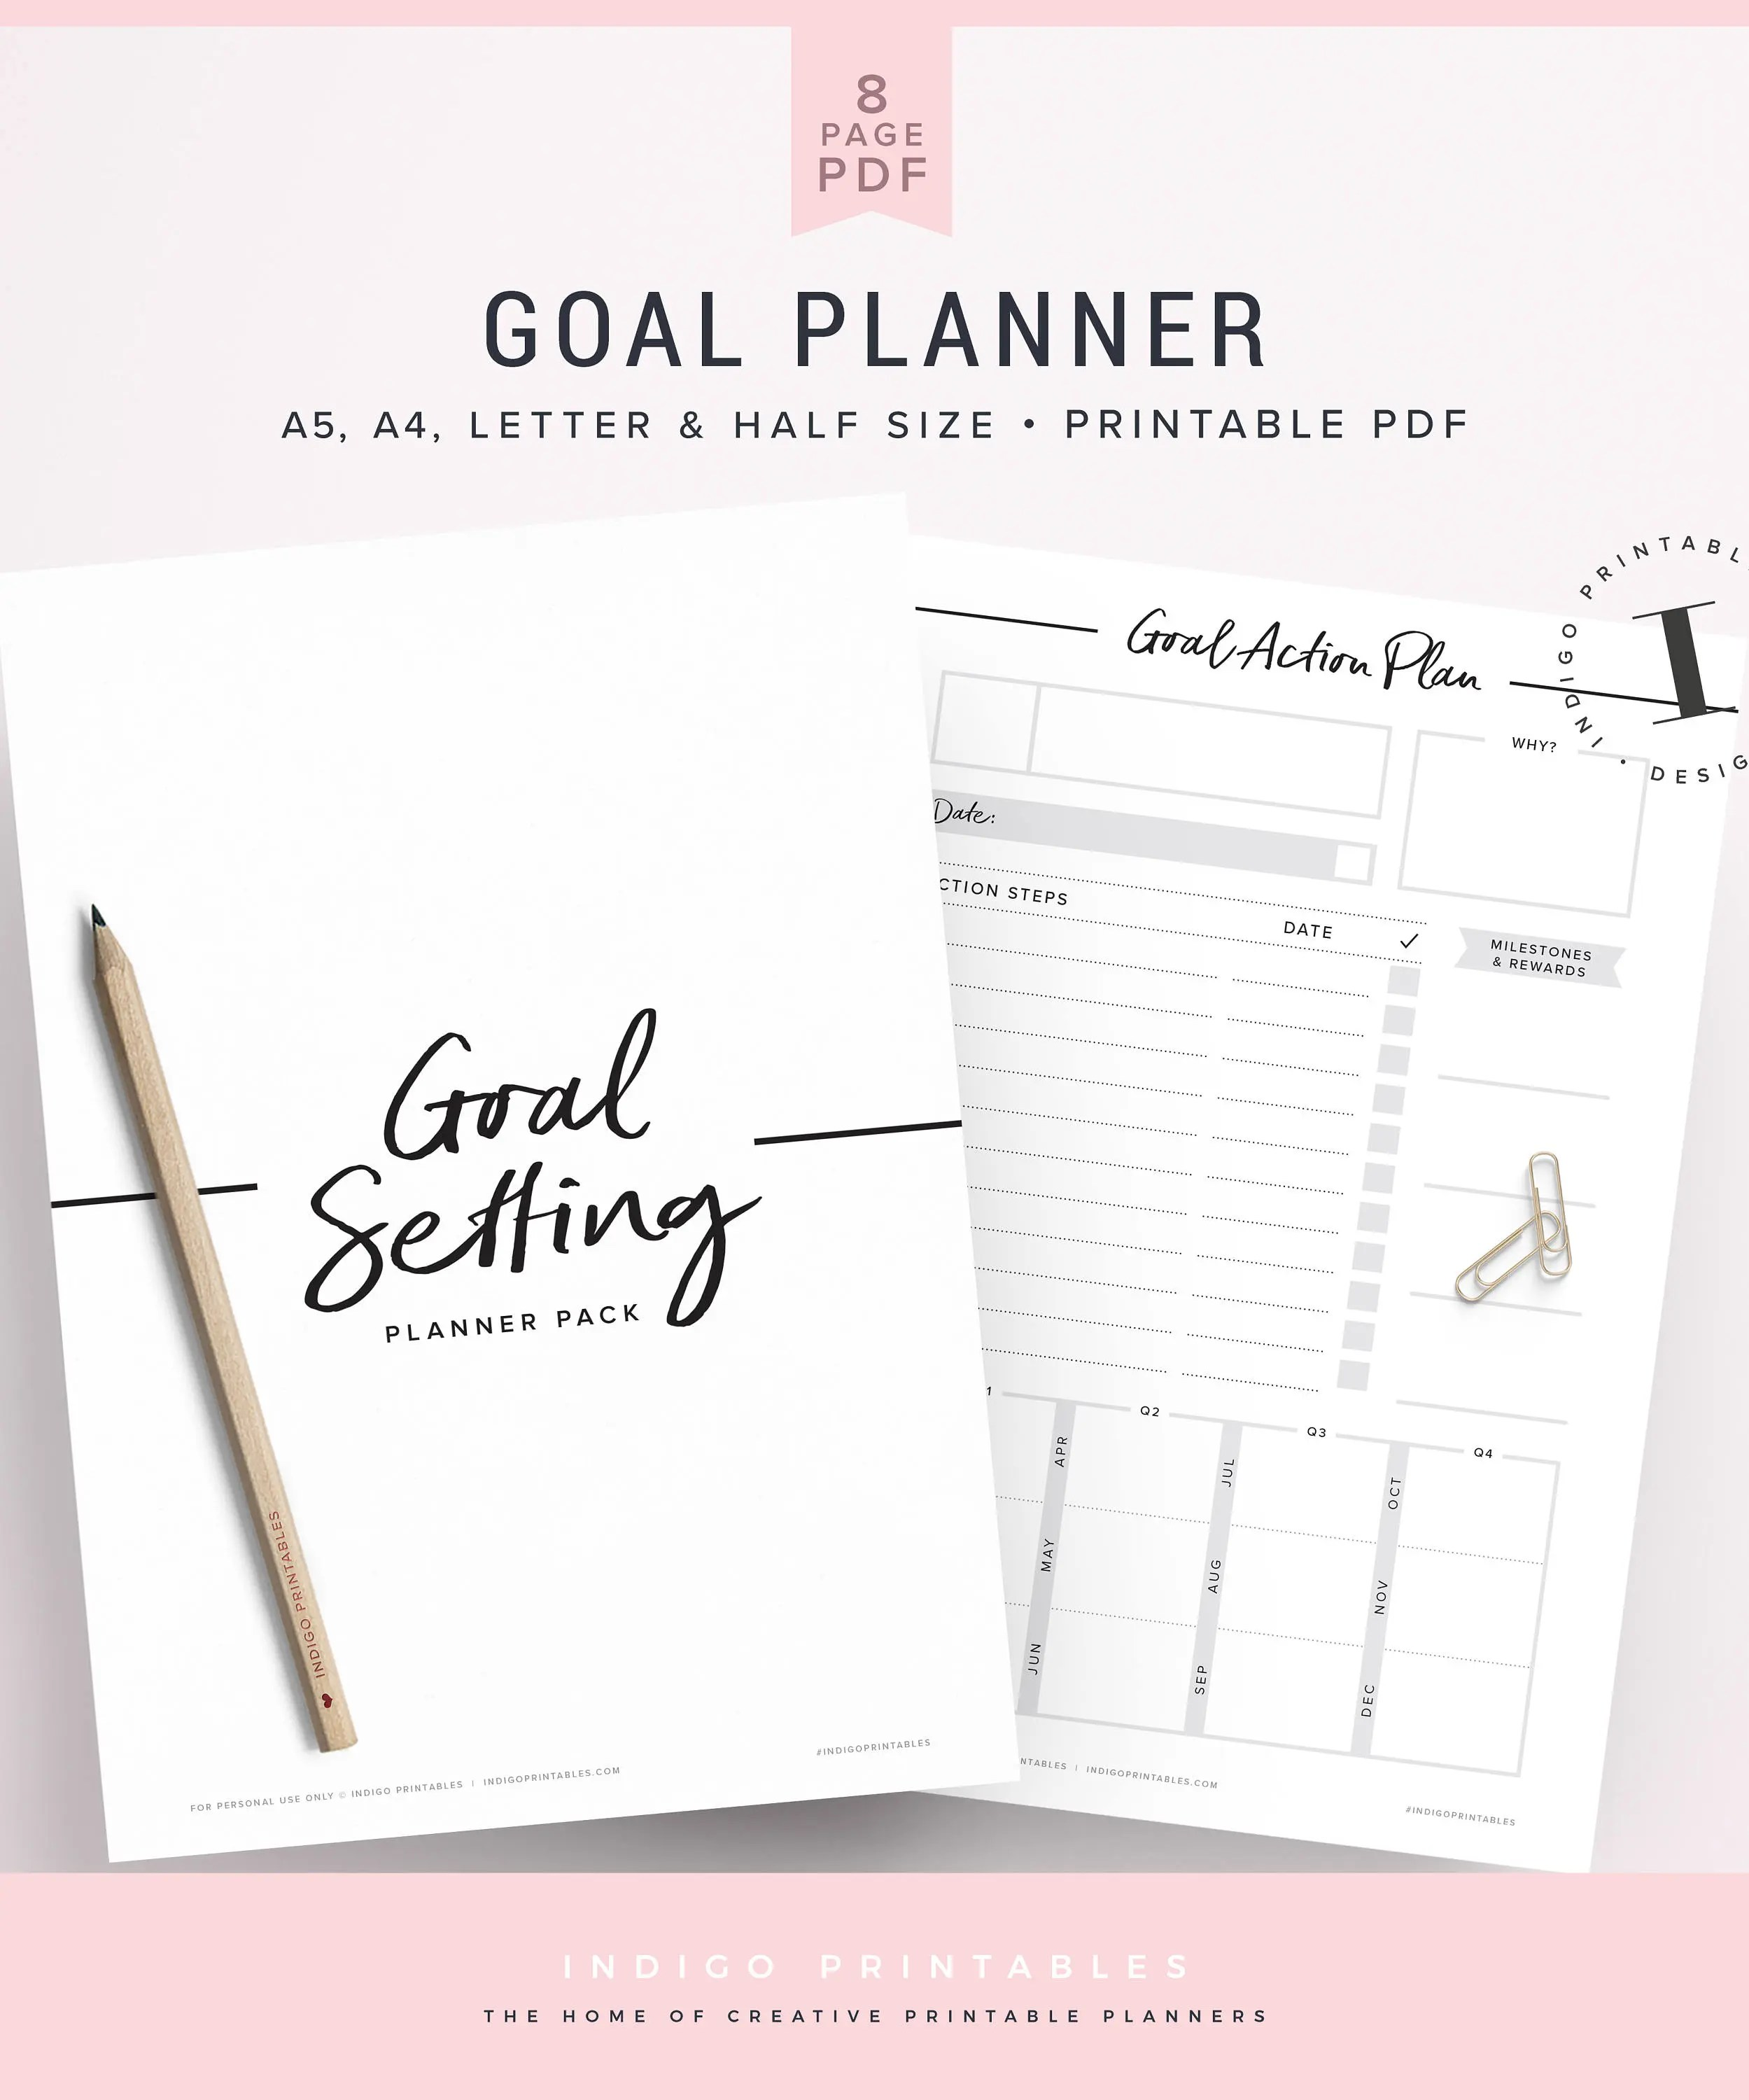 Goal Planner Goal Worksheet Planner Kit Goal Planning Kit